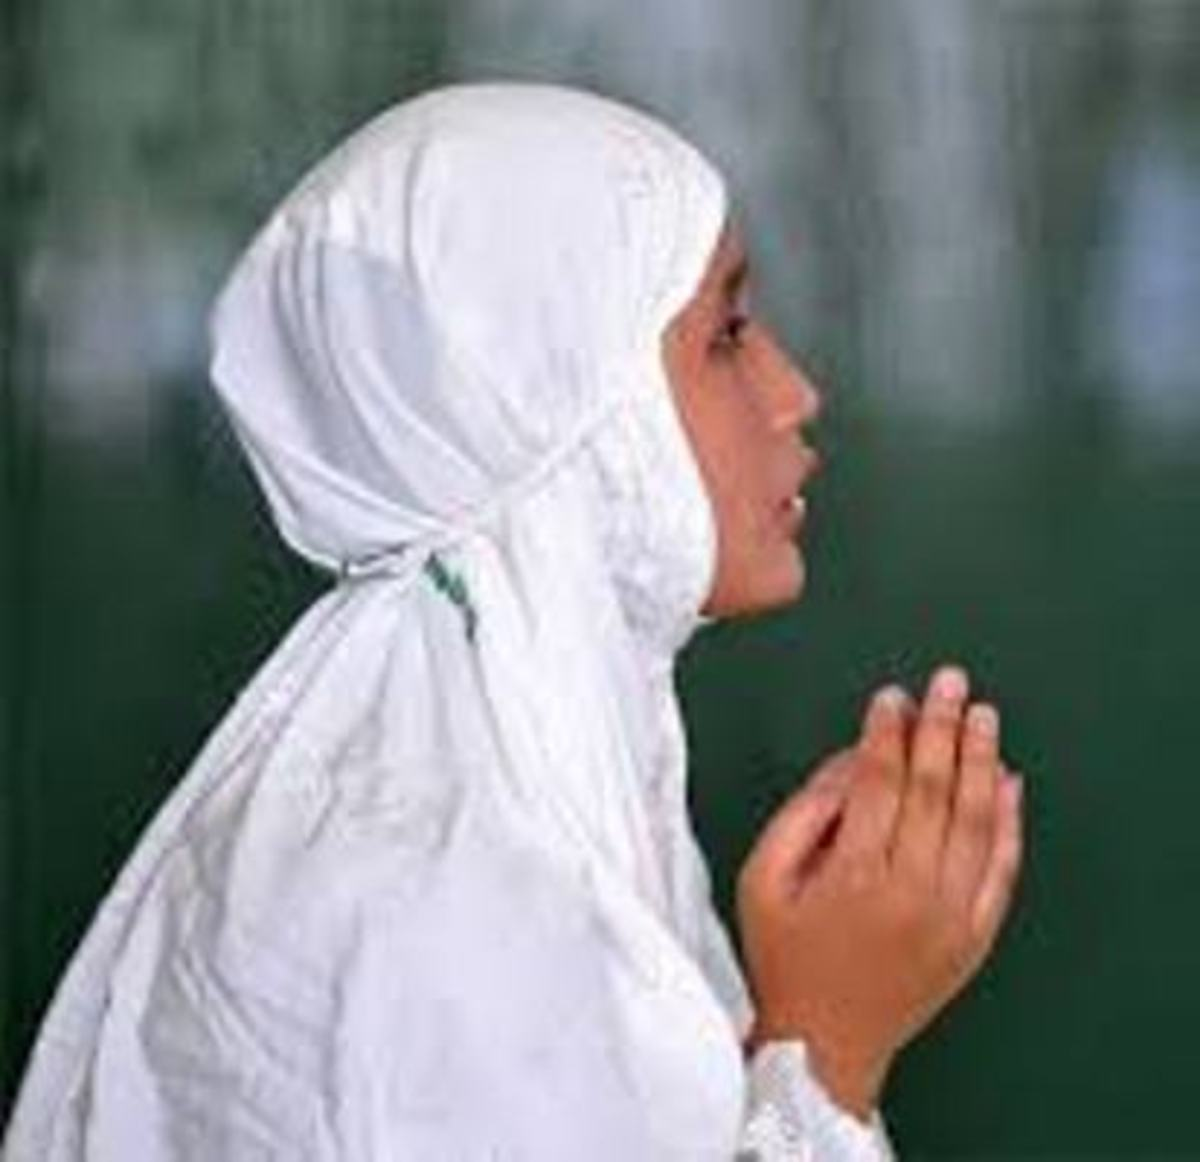 A Woman Praying, Asking from the Universe